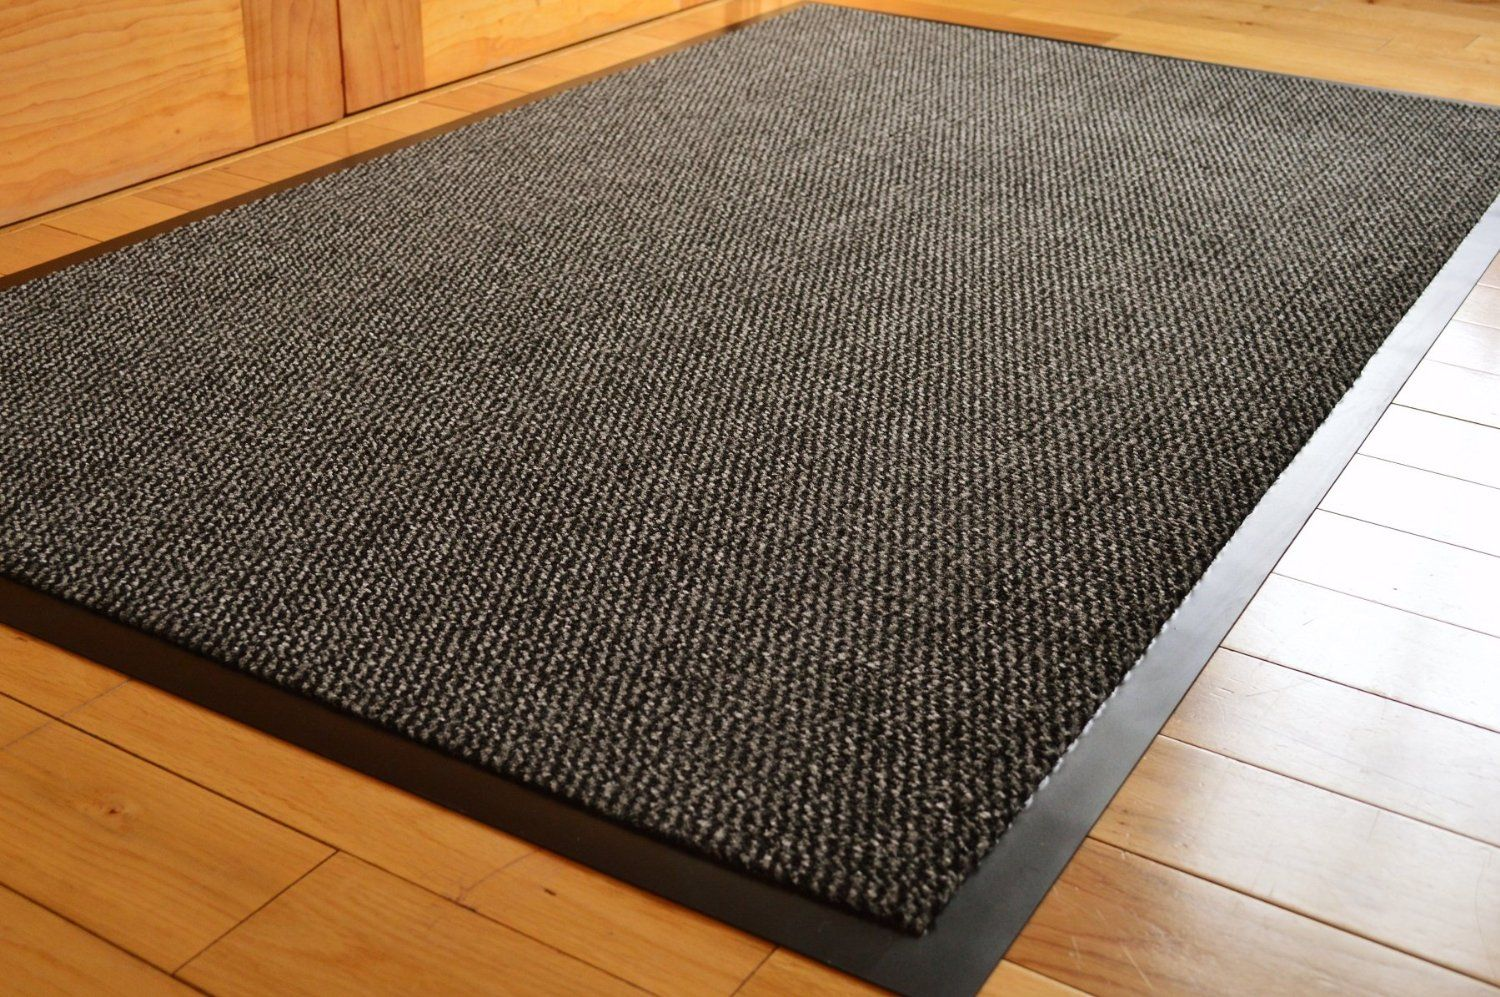 Pin On Kitchen Decorating Ideas Washable throw rugs without rubber backing